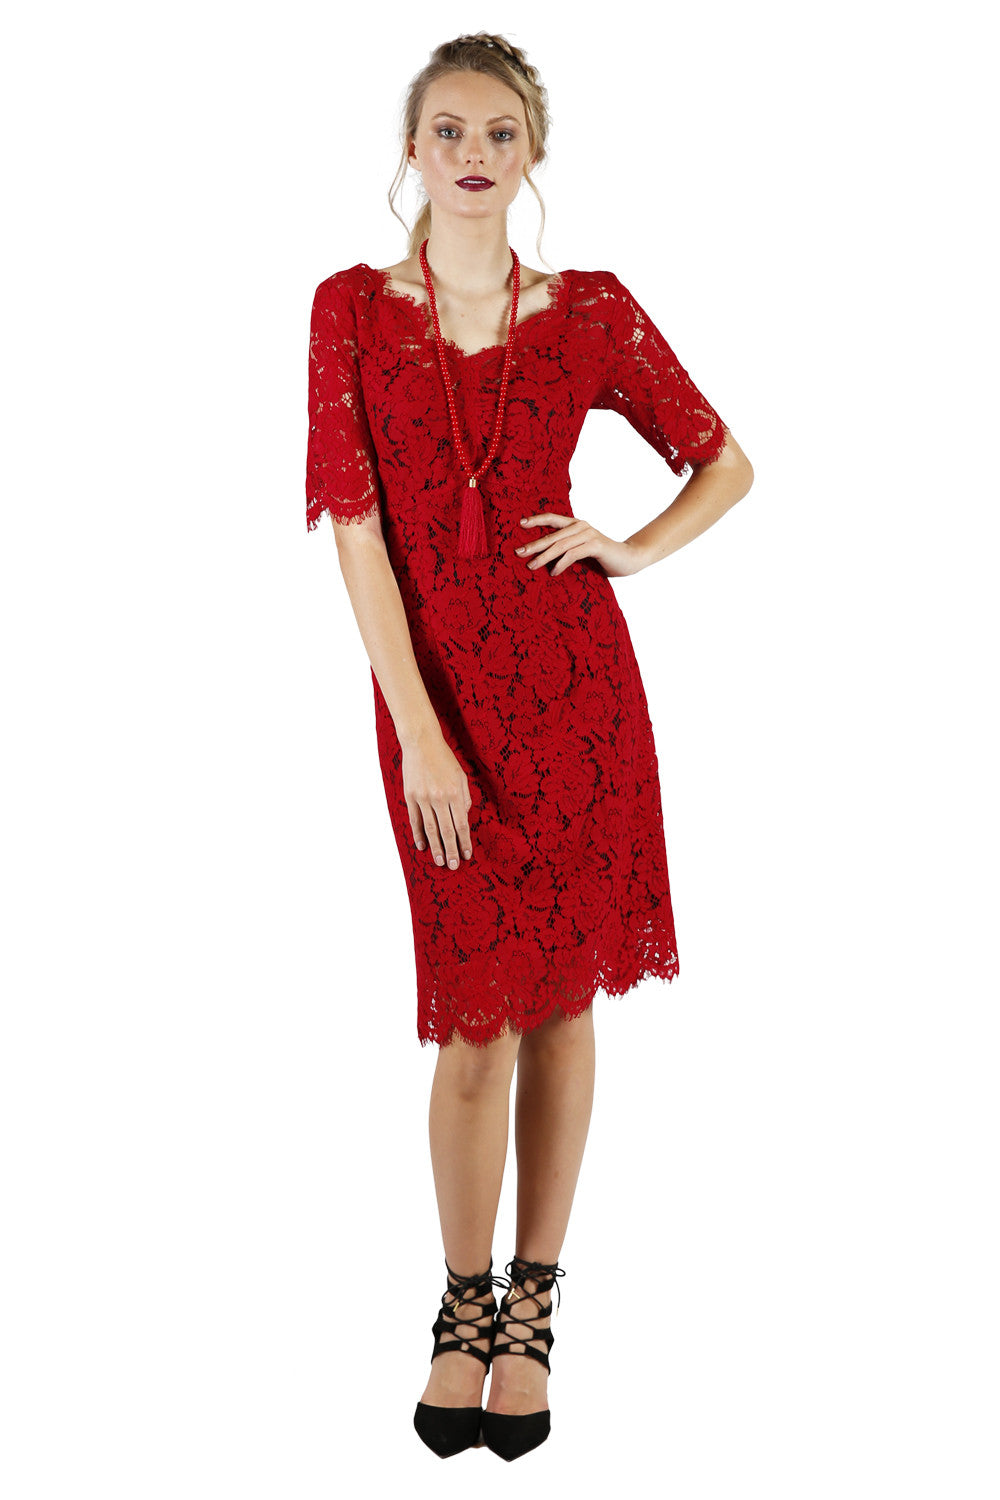 Https Daily Tania Blouse In Mustard Beatrice Clothing Gorgeous Red Lace Dresses For Occasionsv1516836645